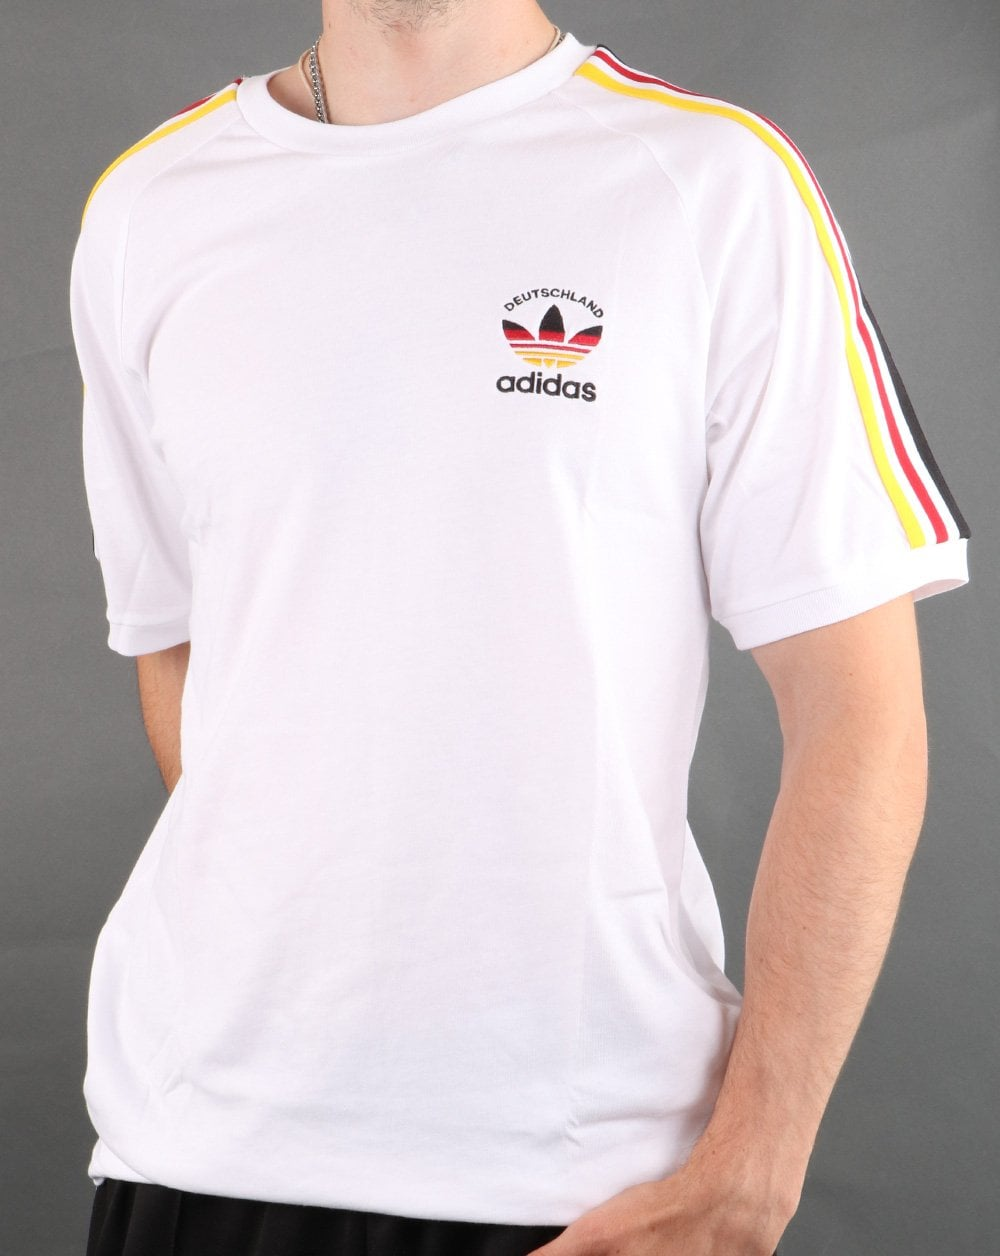 adidas Originals Germany T-shirt